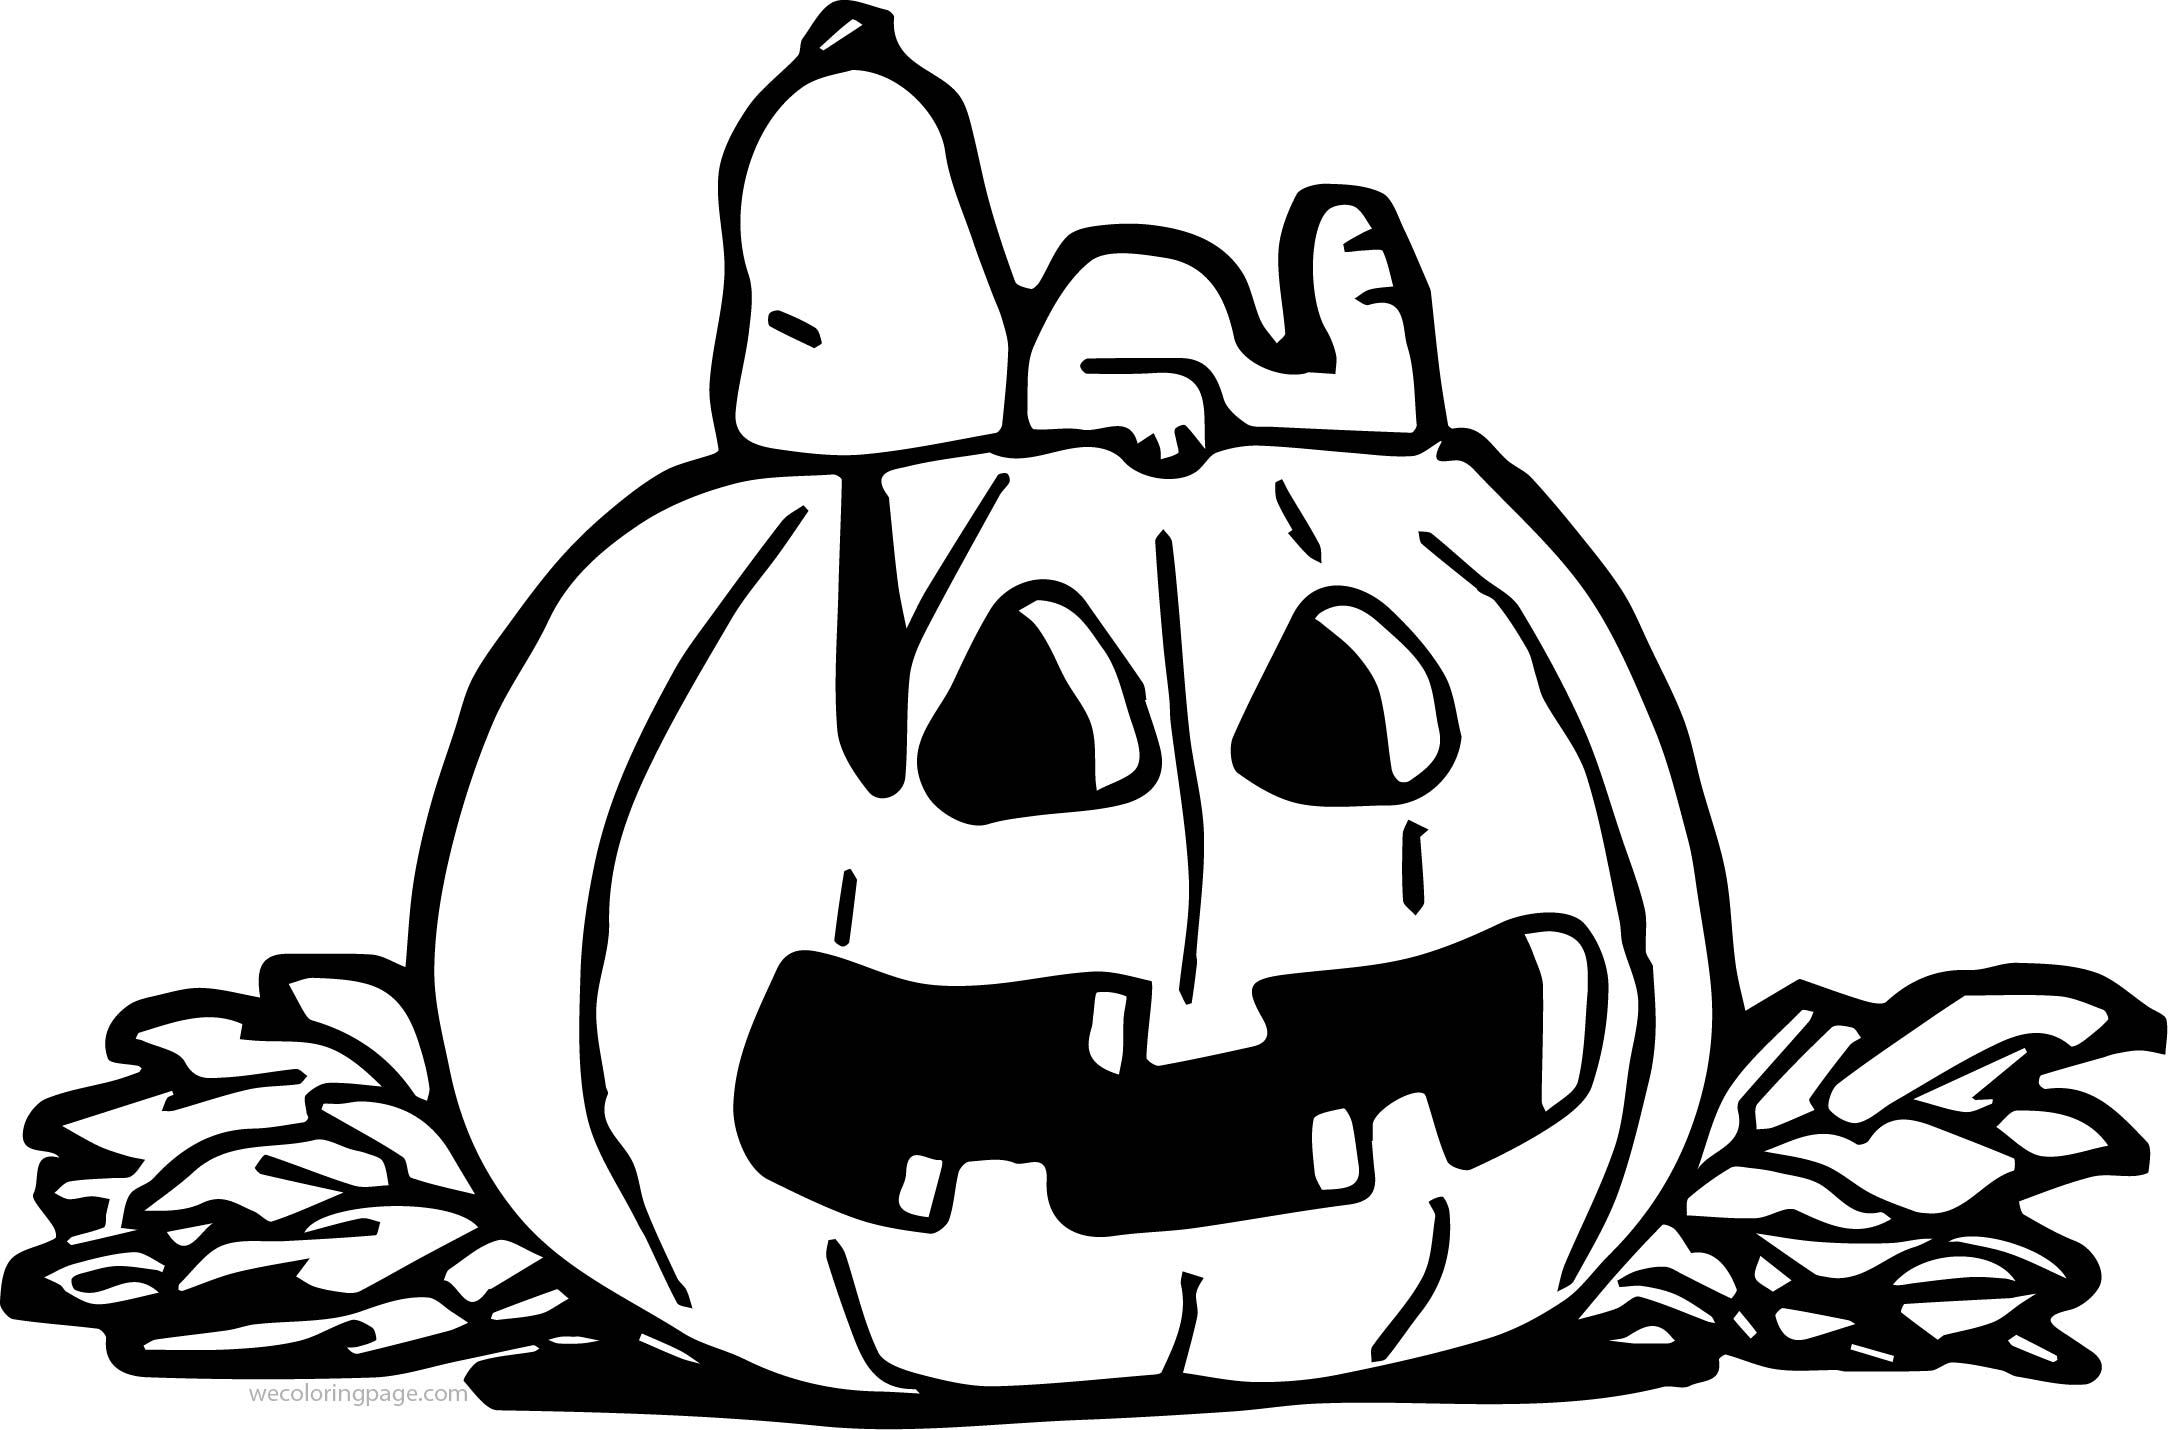 Halloween Snoopy Pumpkin Coloring Page